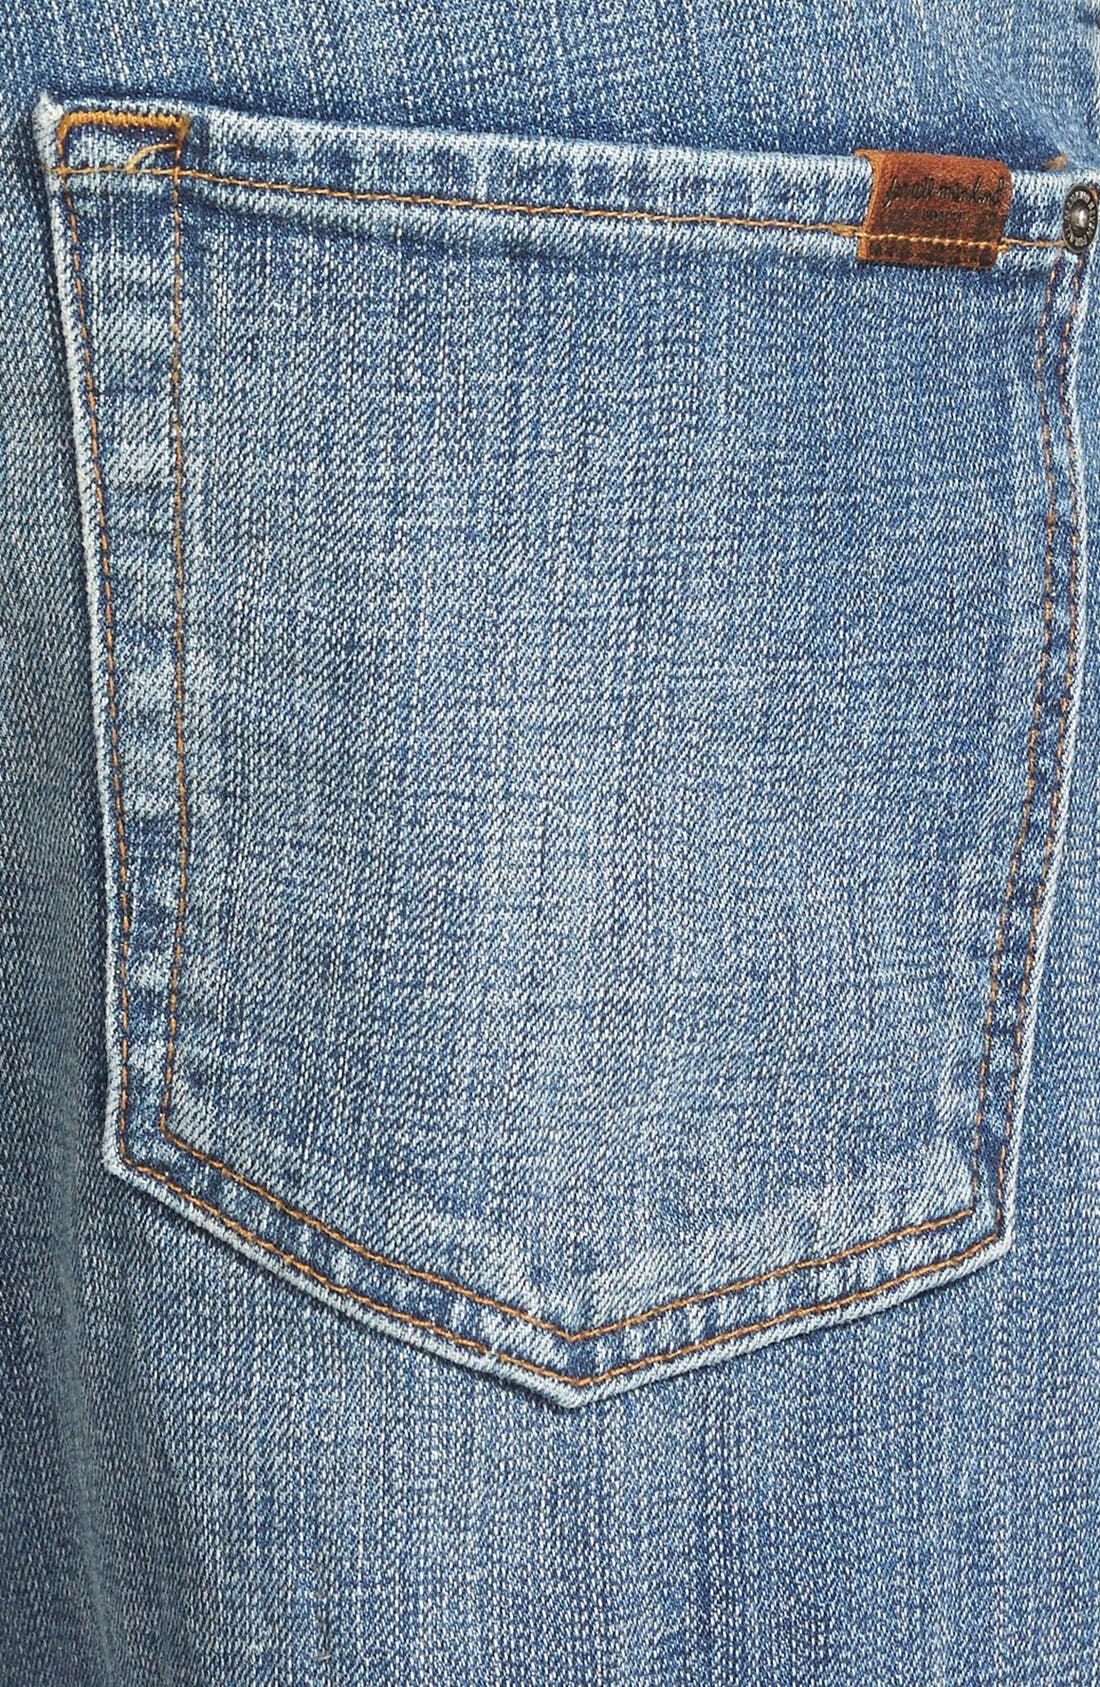 7 FOR ALL MANKIND<SUP>®</SUP>, 'Slimmy' Slim Fit Jeans, Alternate thumbnail 2, color, 400